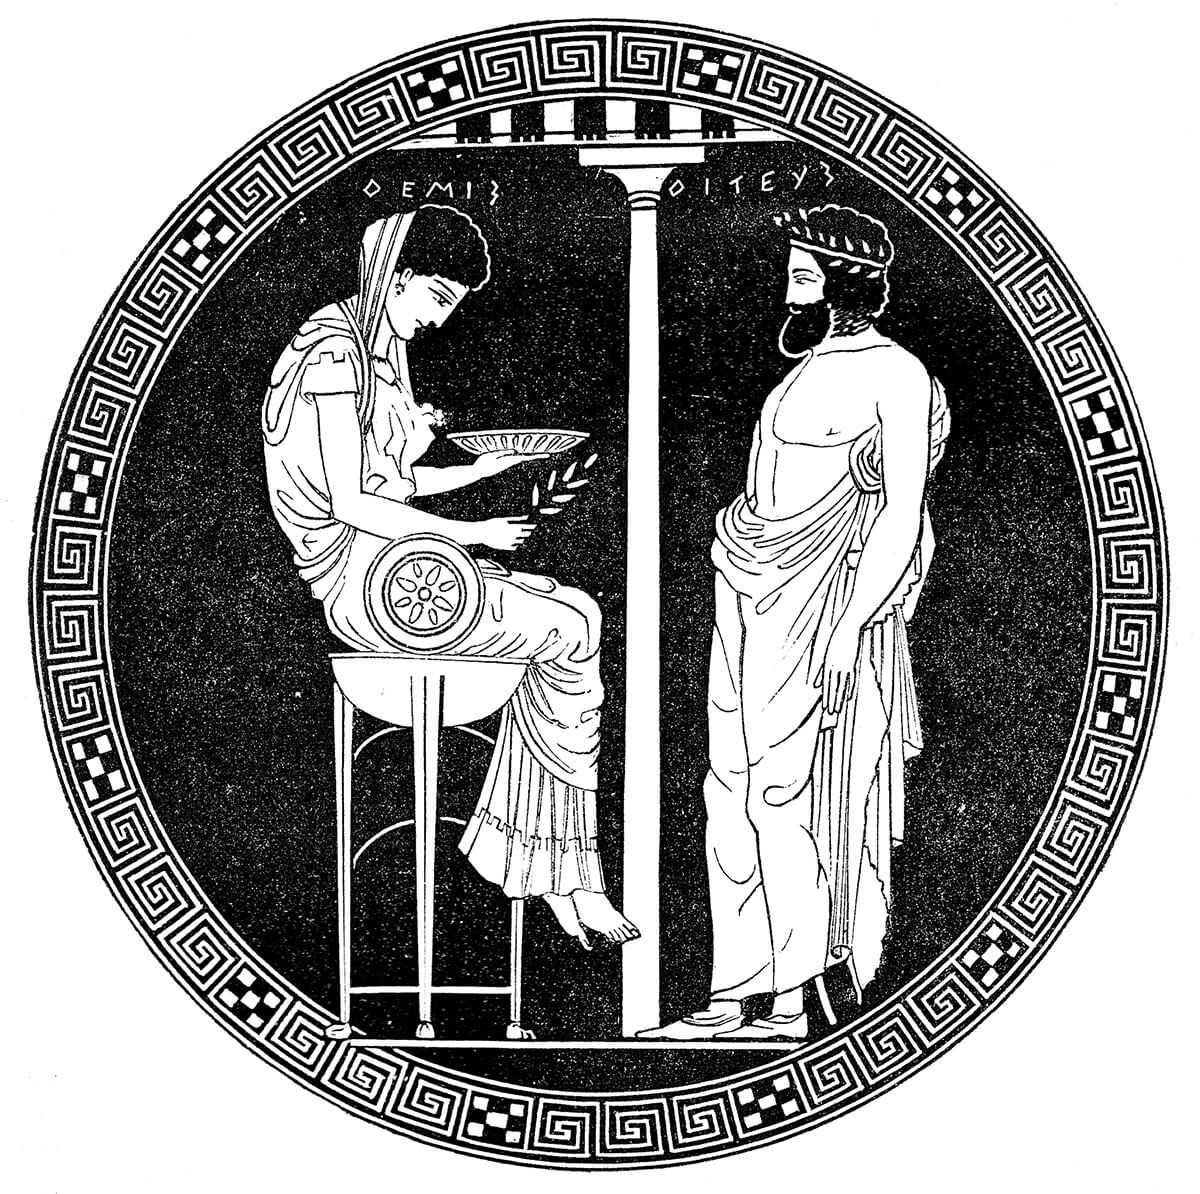 Themis, as the prototype of the Pythia, seated on the Delphic tripod, consulted by Aigeus